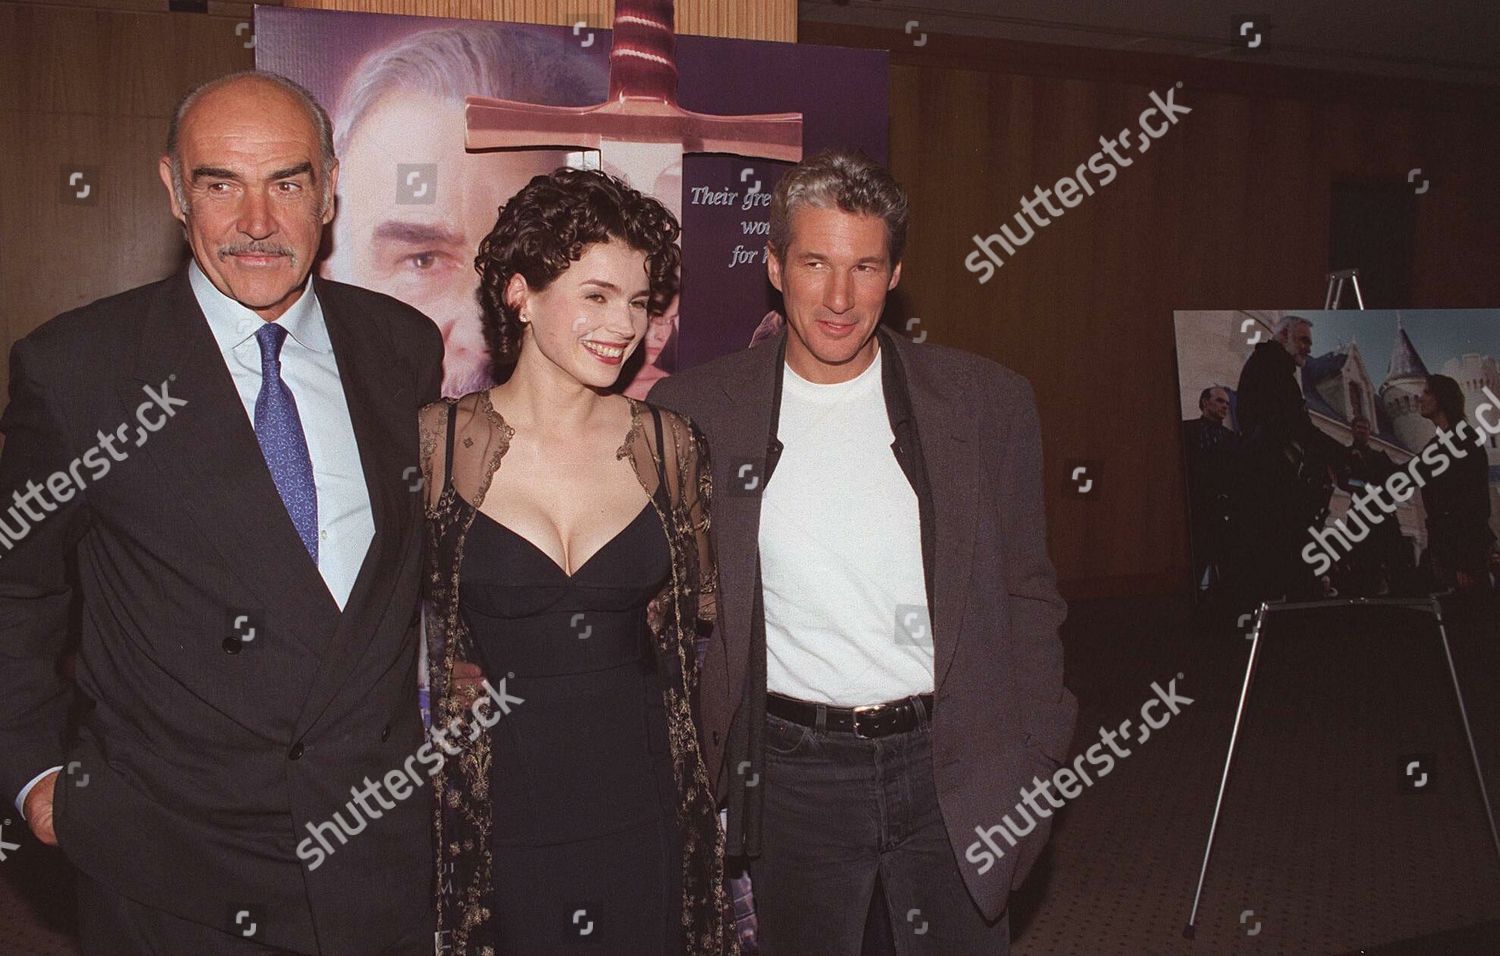 Julia Ormond Immagini foto stock editoriale richard gere julia ormond sean connery